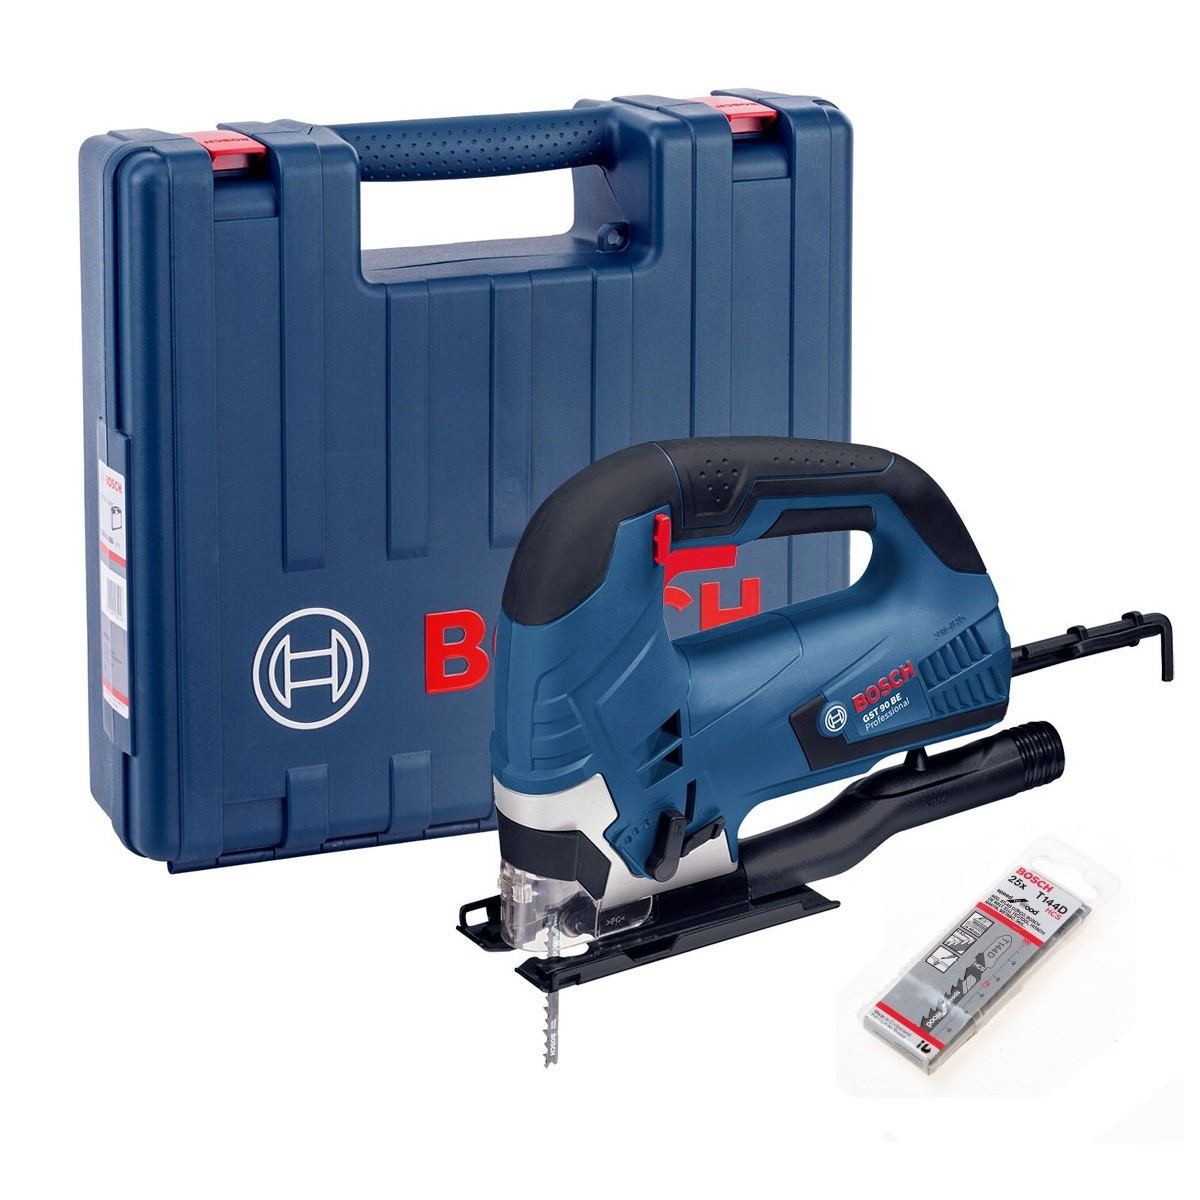 Bosch gst 90 be 90mm bow handle jigsaw in carry case 25 blades bosch gst 90 be 90mm bow handle jigsaw in carry case 25 blades powertool world greentooth Images